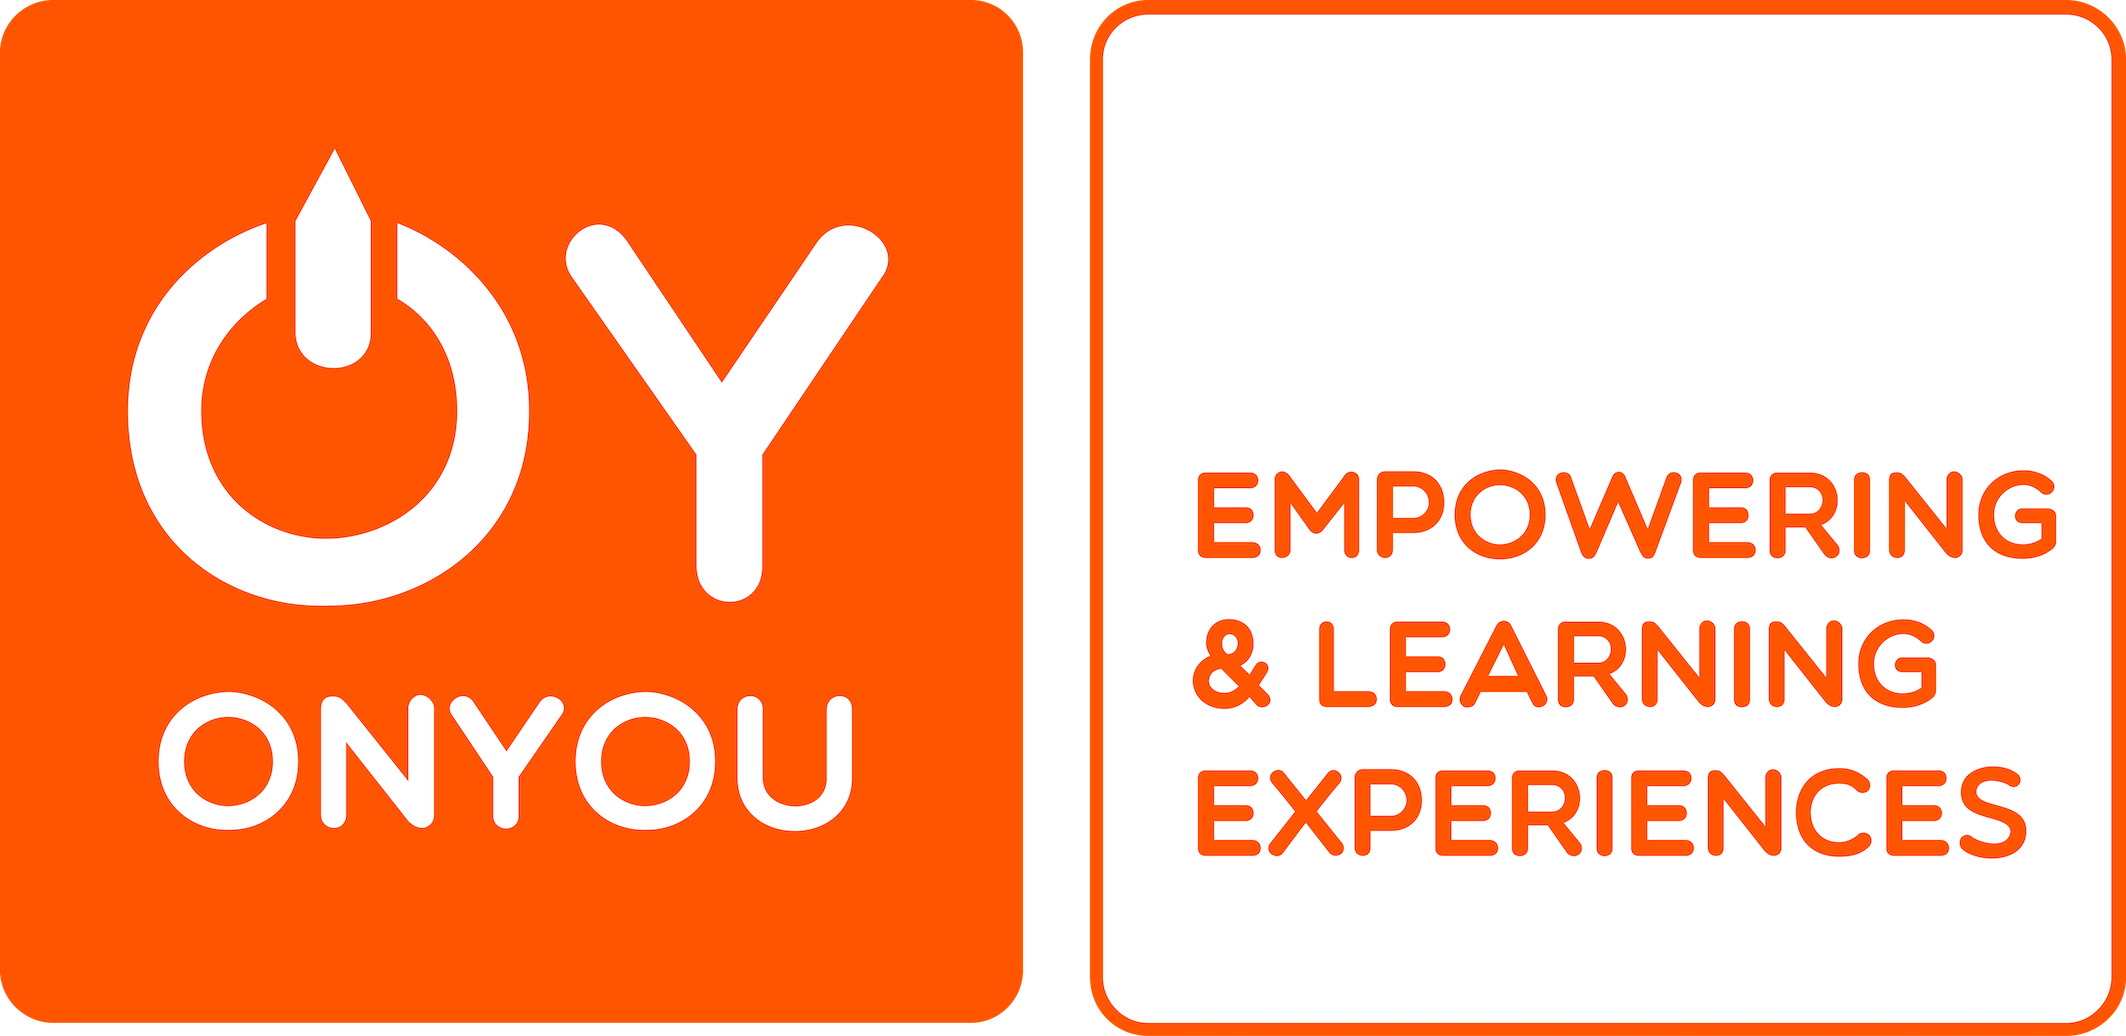 ONYOU - Empowering & Learning Experiences